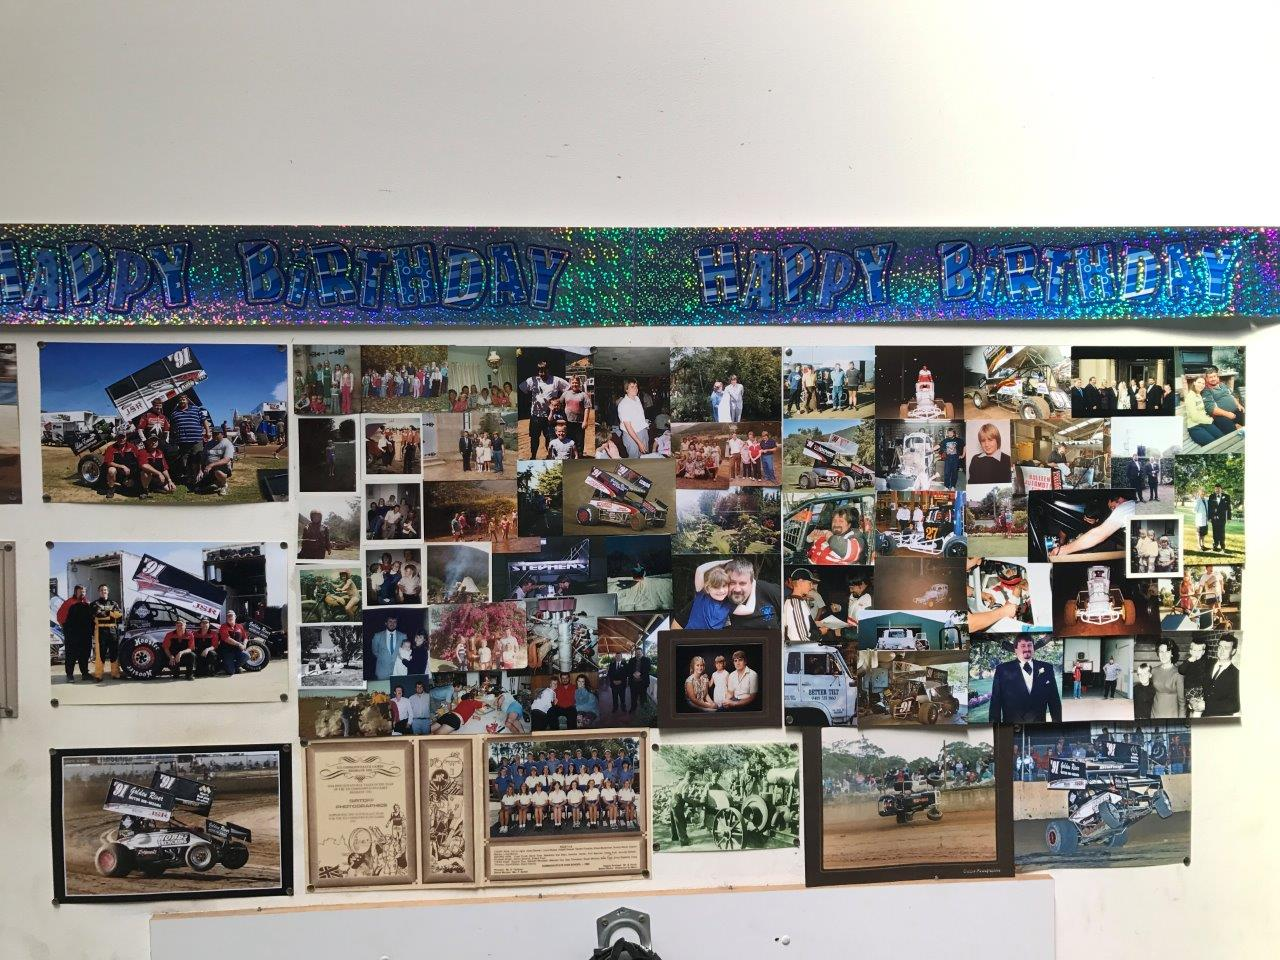 A ripper photo board greeted guests as they entered the BSR inner sanctum